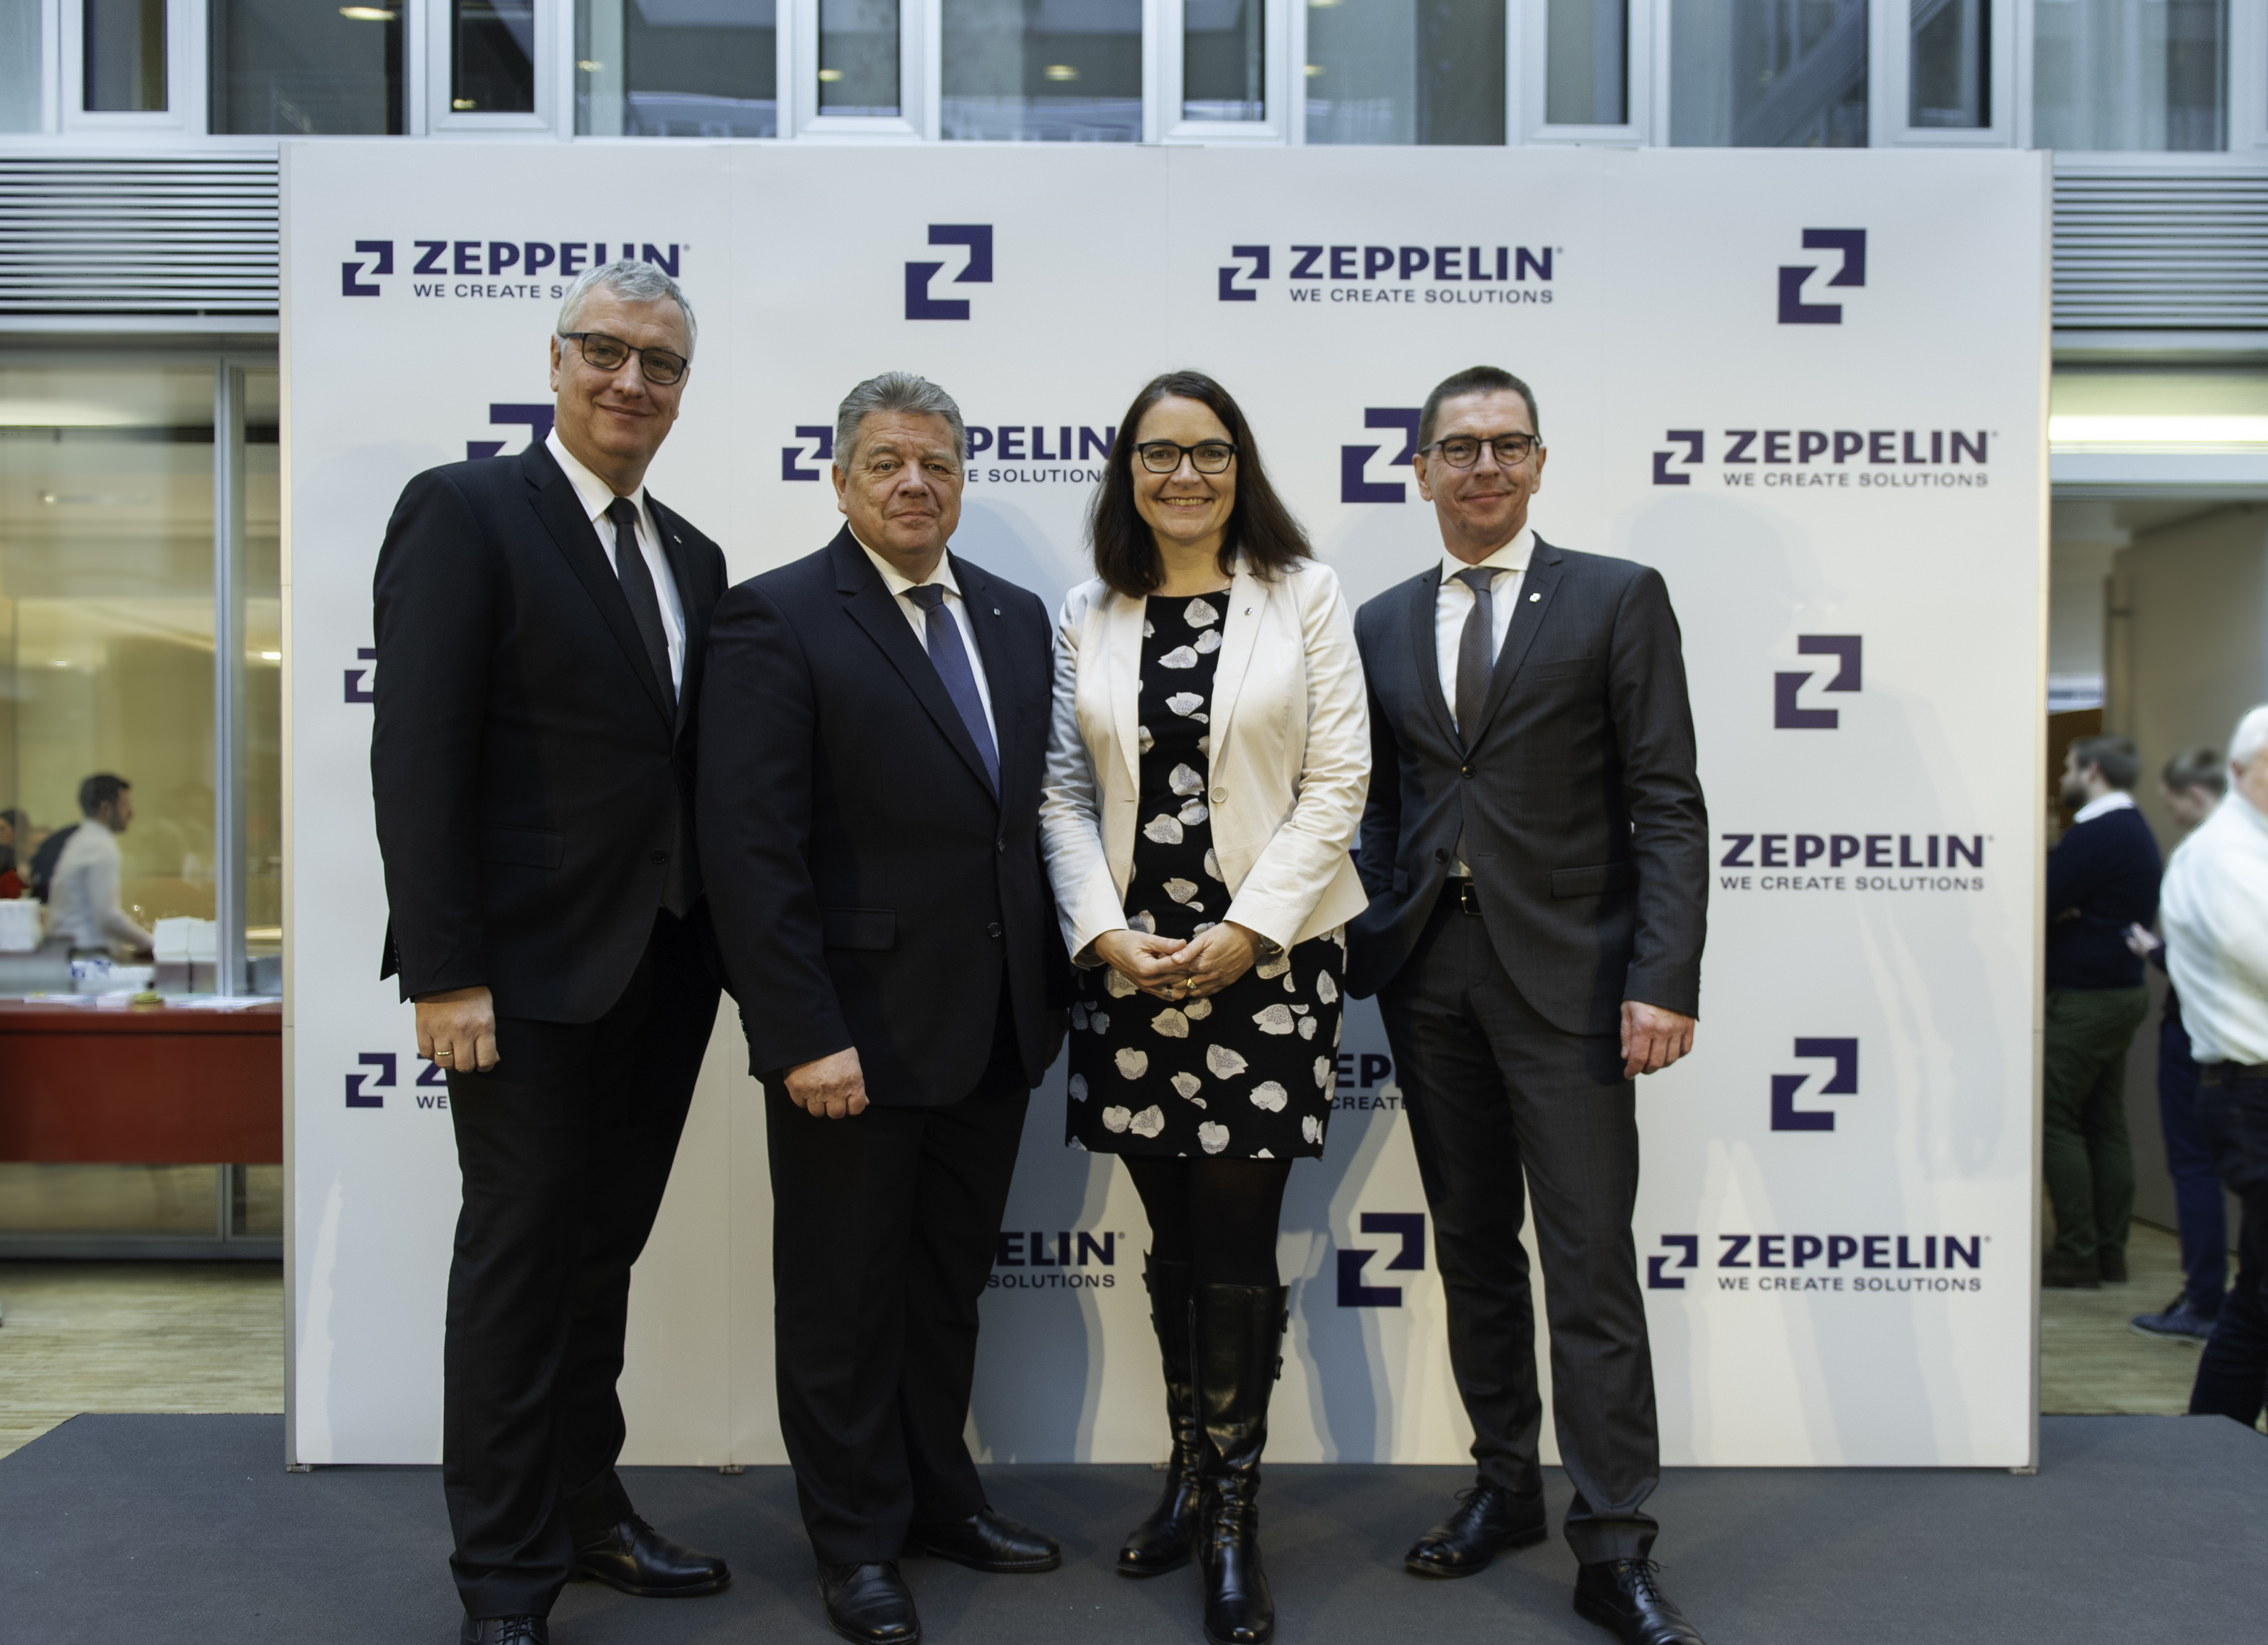 Zeppelin Group Management Board introducing new corporate design